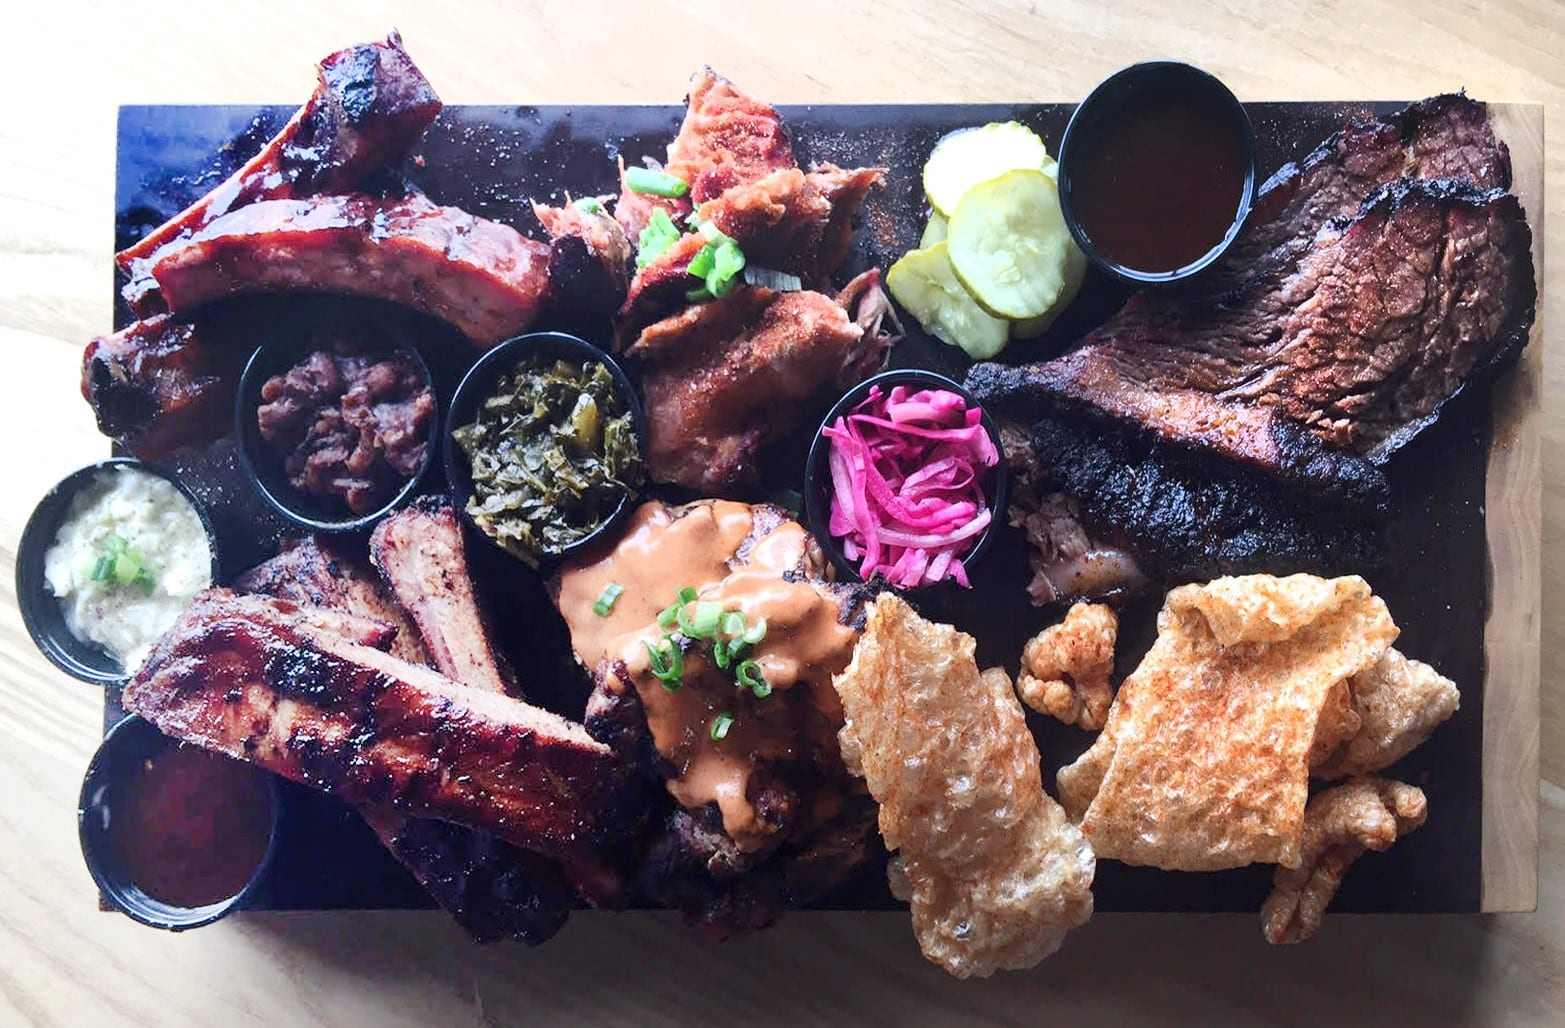 A spread of various barbecued meats